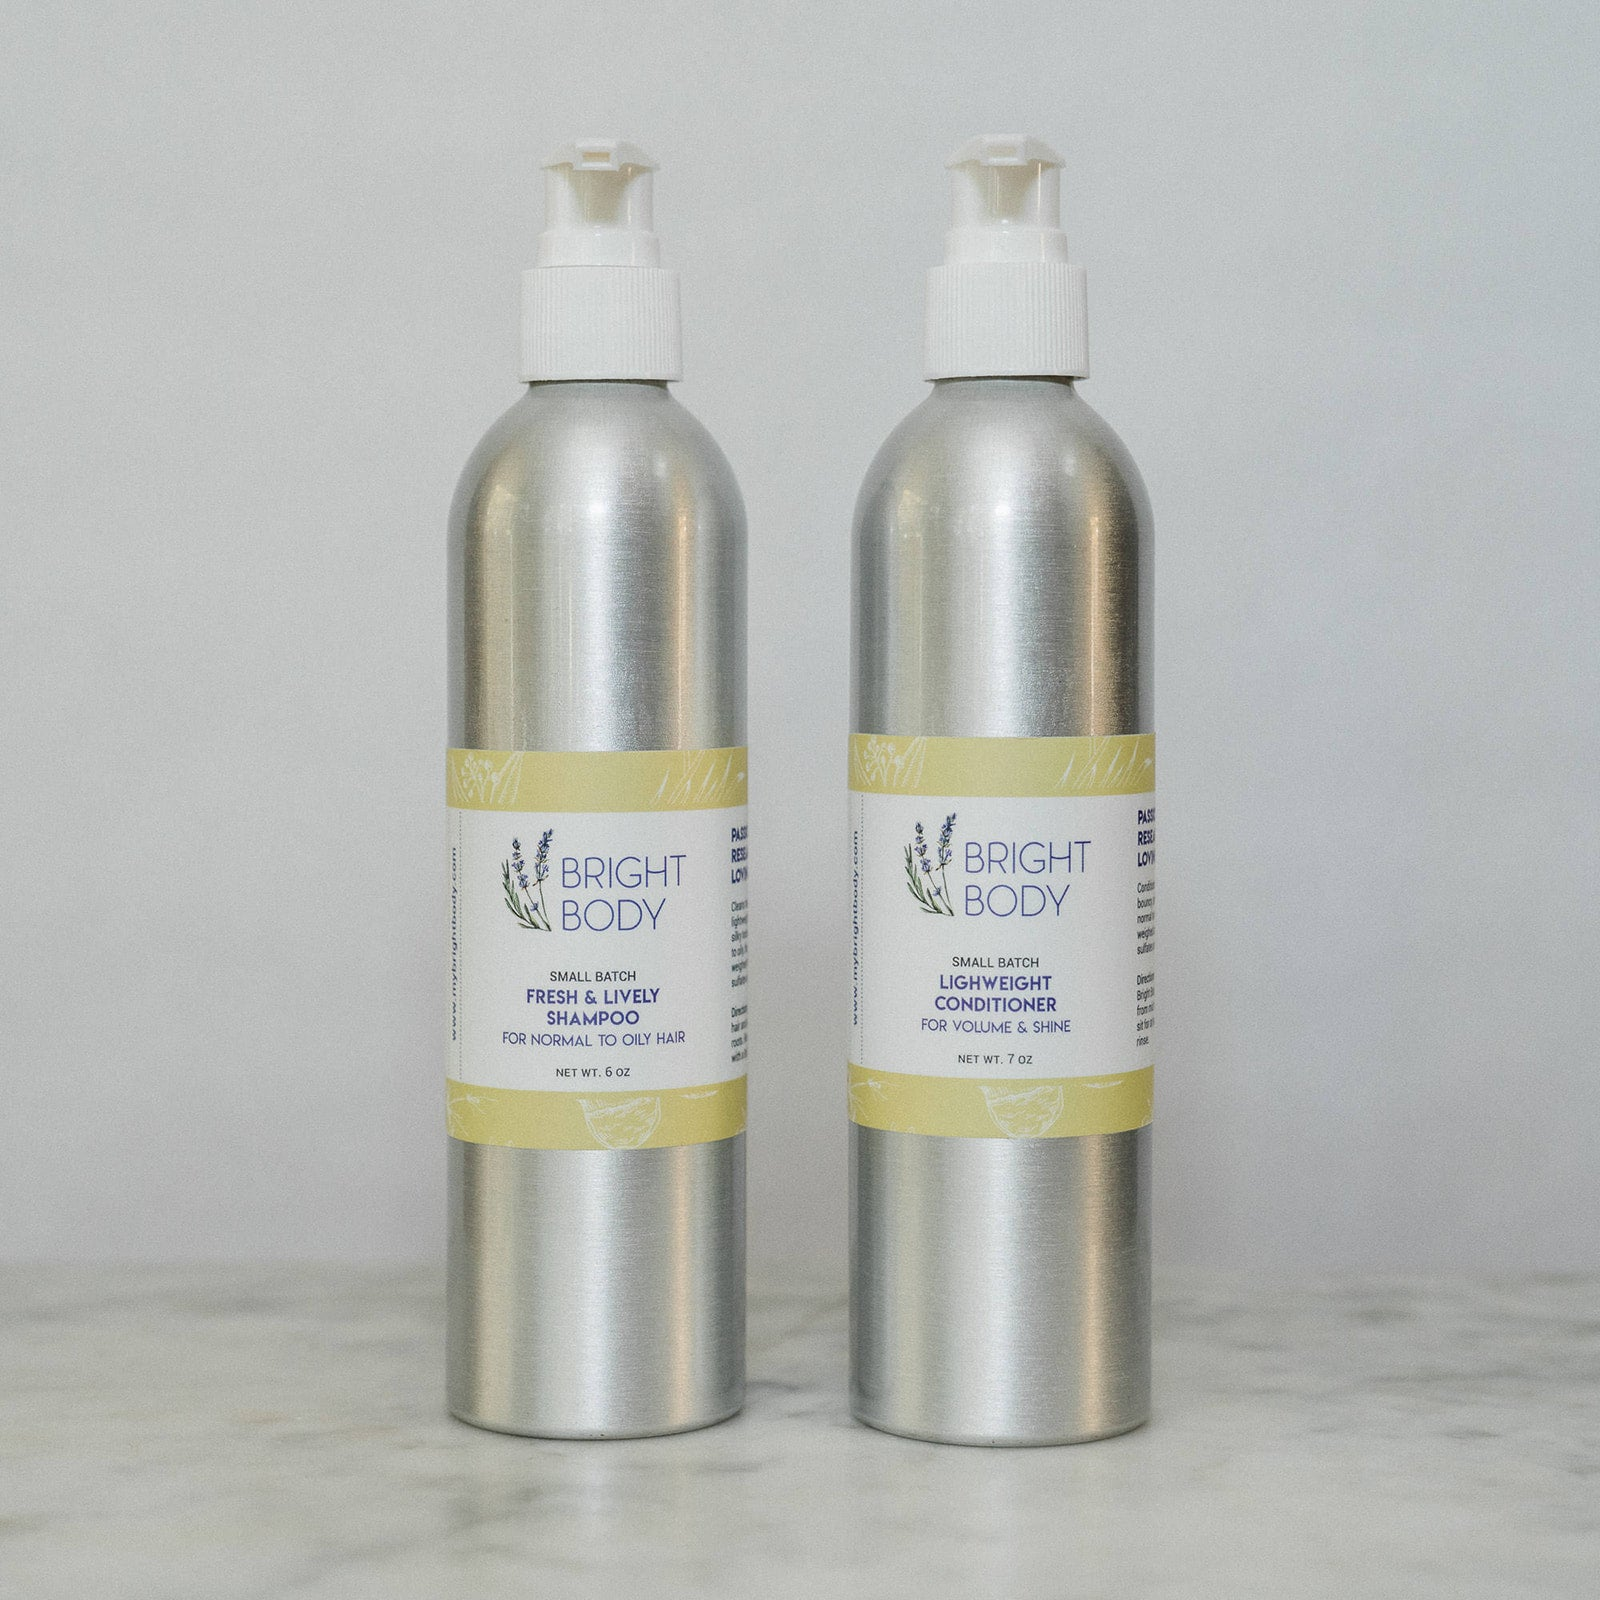 Sulfate Free Shampoo Silicone Free Conditioner Organic Hair Products